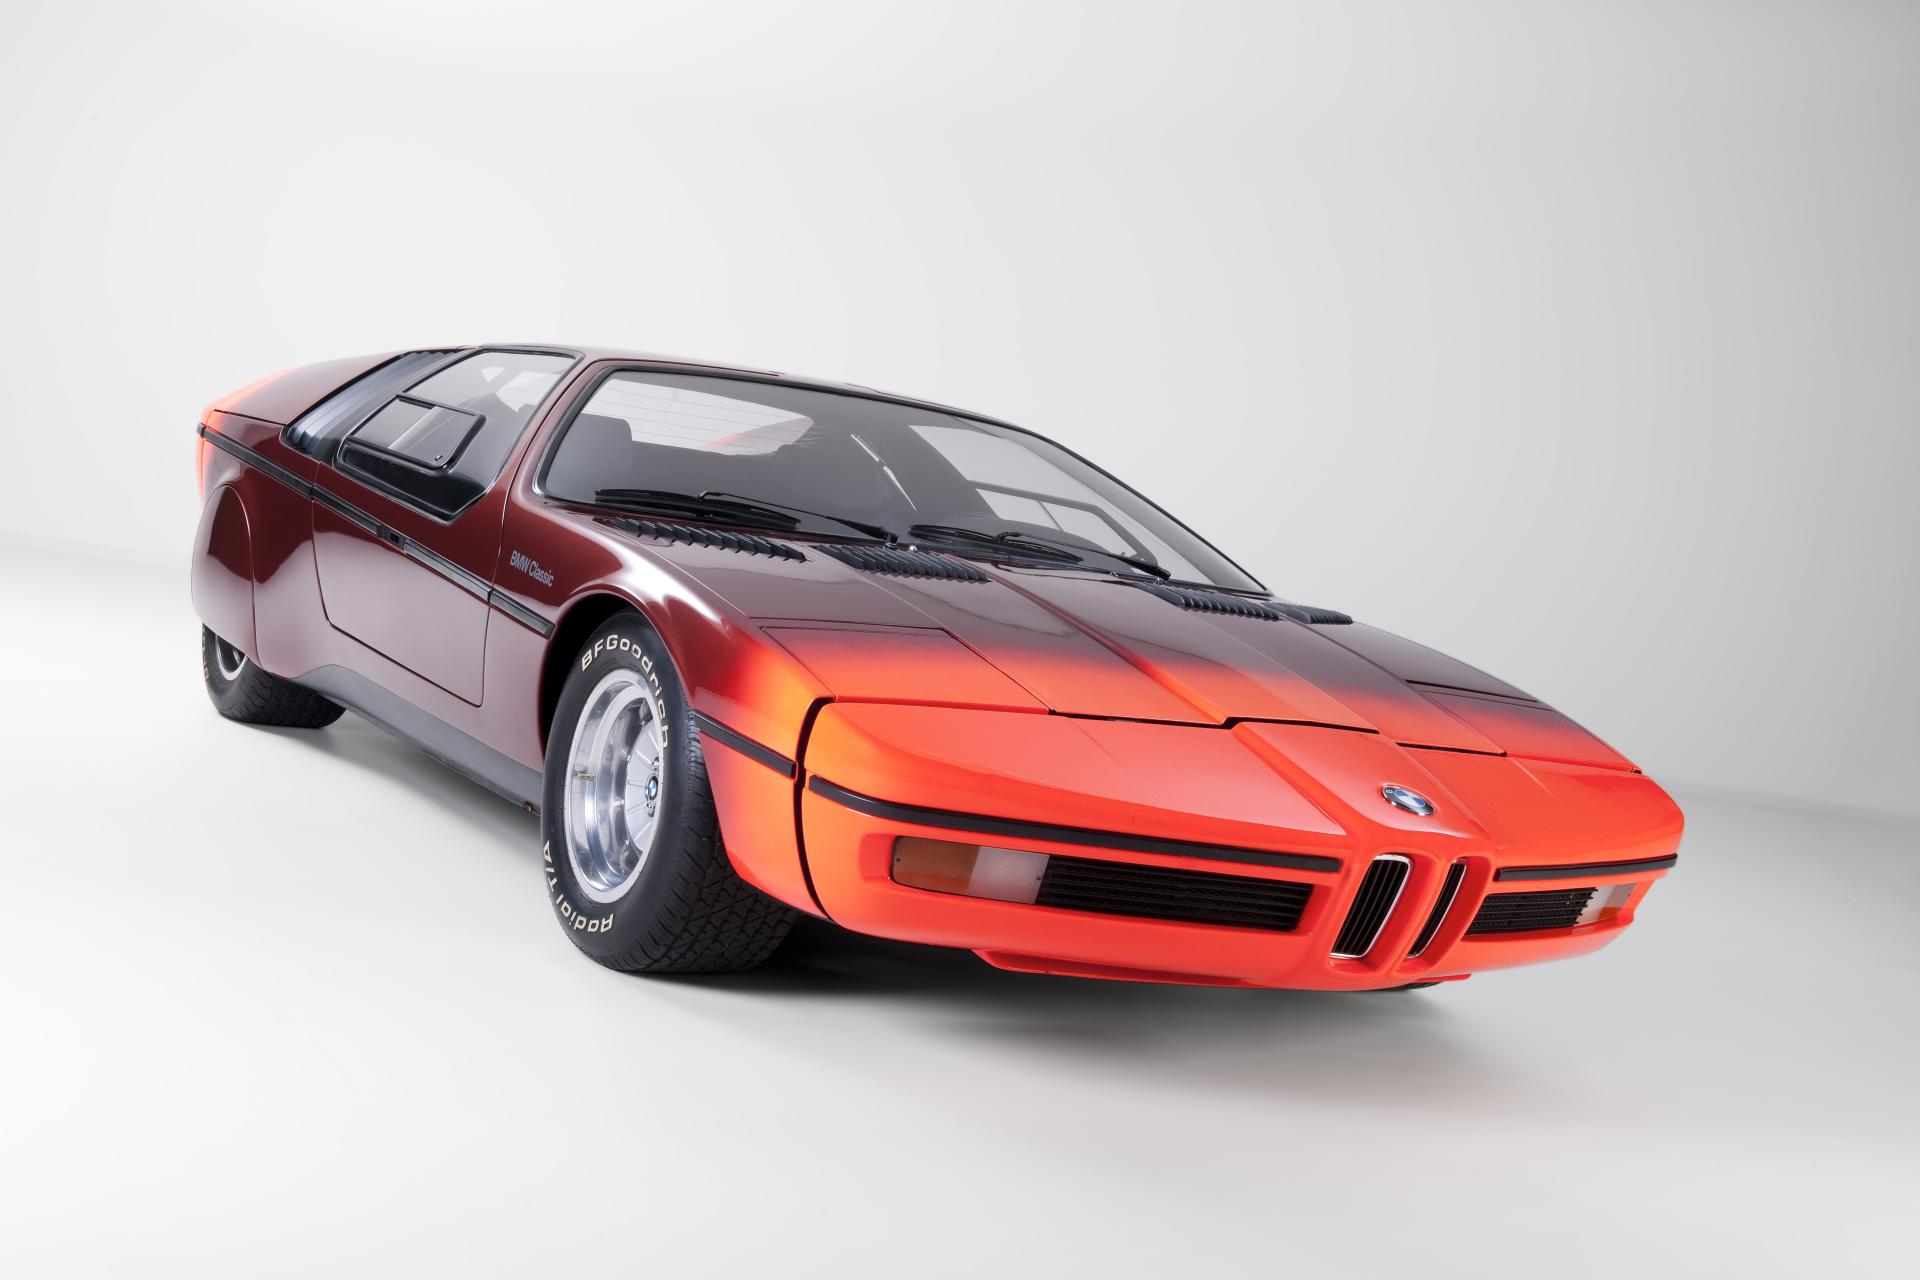 Bmw M1 S Predecessor Bmw Braque Turbo Autoevolution